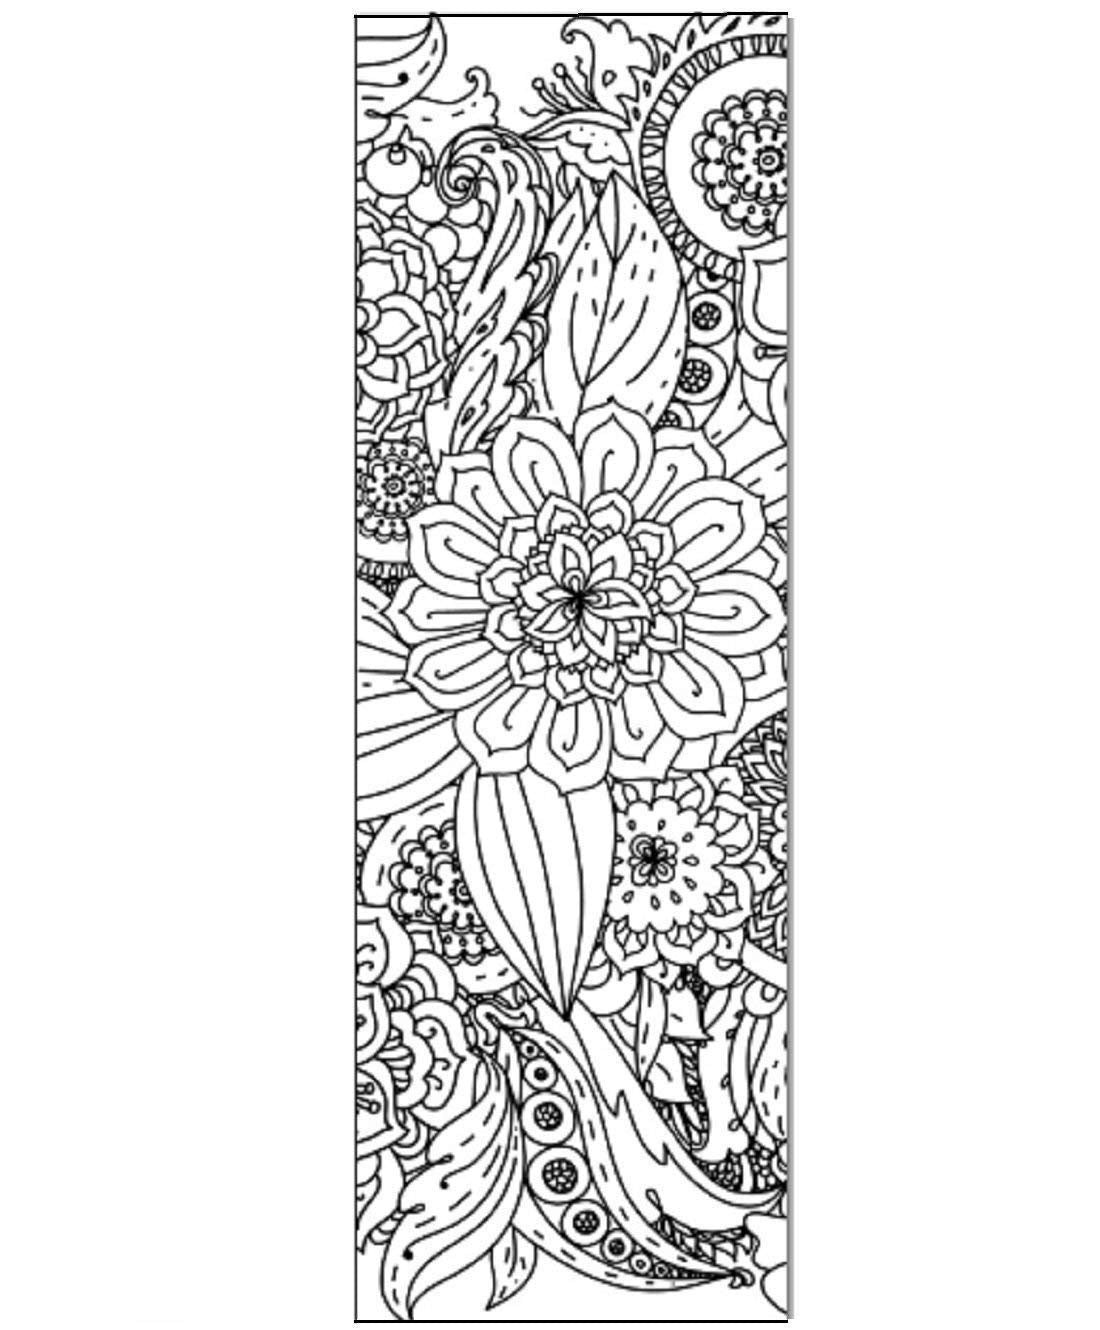 Floral Color Your Own Bookmarks Anti Stress Art Therapy Adult Coloring (50 Pack)